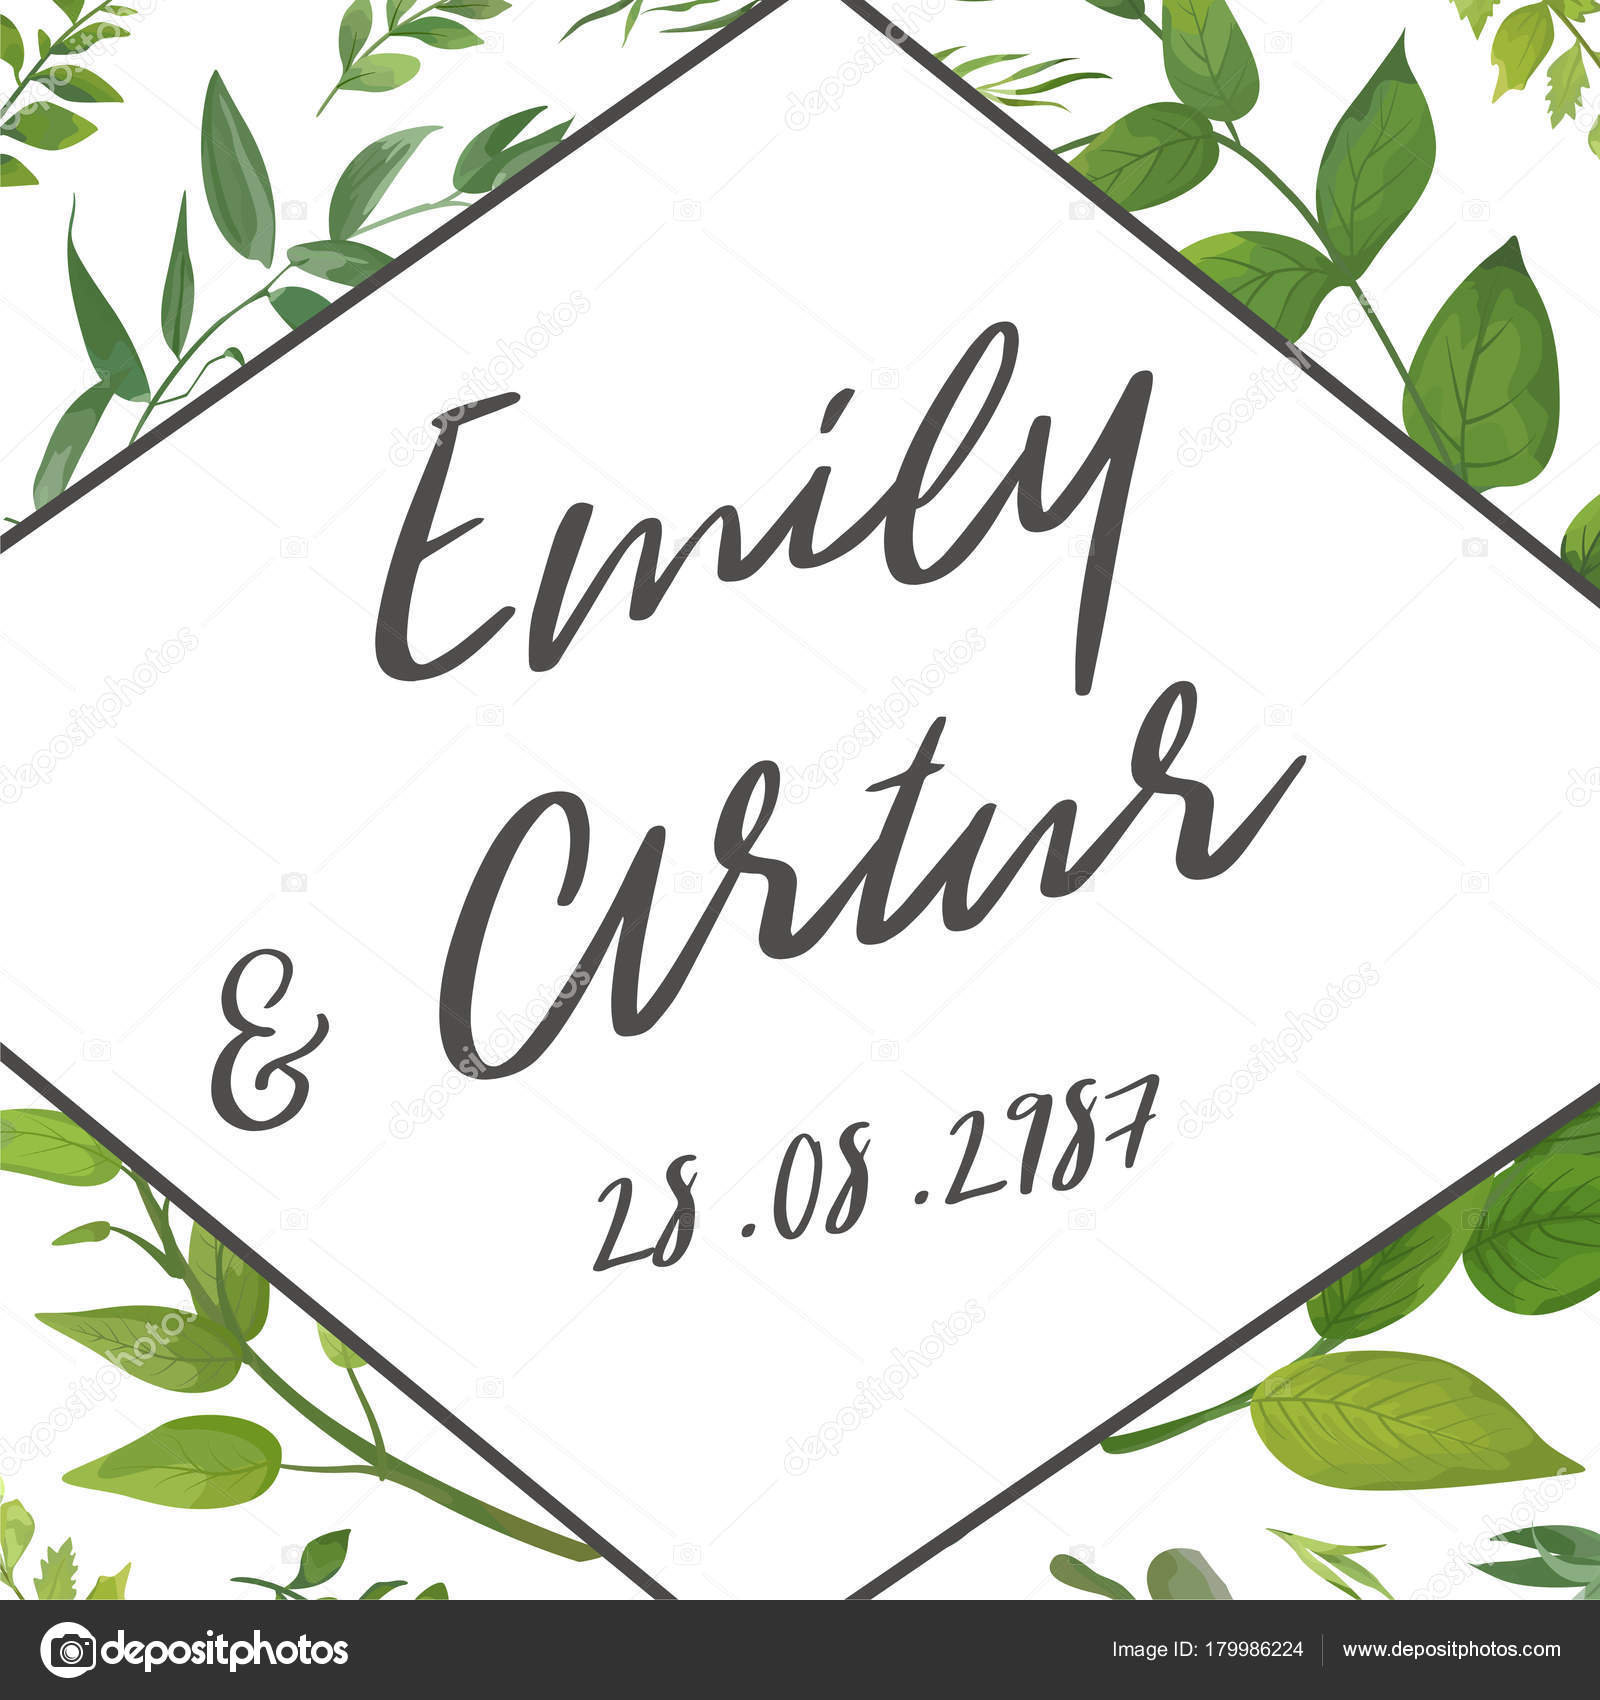 Green Fern, Forest Leaves Herbs, Greenery Plant Mix. Natural Botanical  Greeting Editable Template. Geometrical Gray Frame, Border U2014 Vector By  Alewiena  Editable Leaf Template